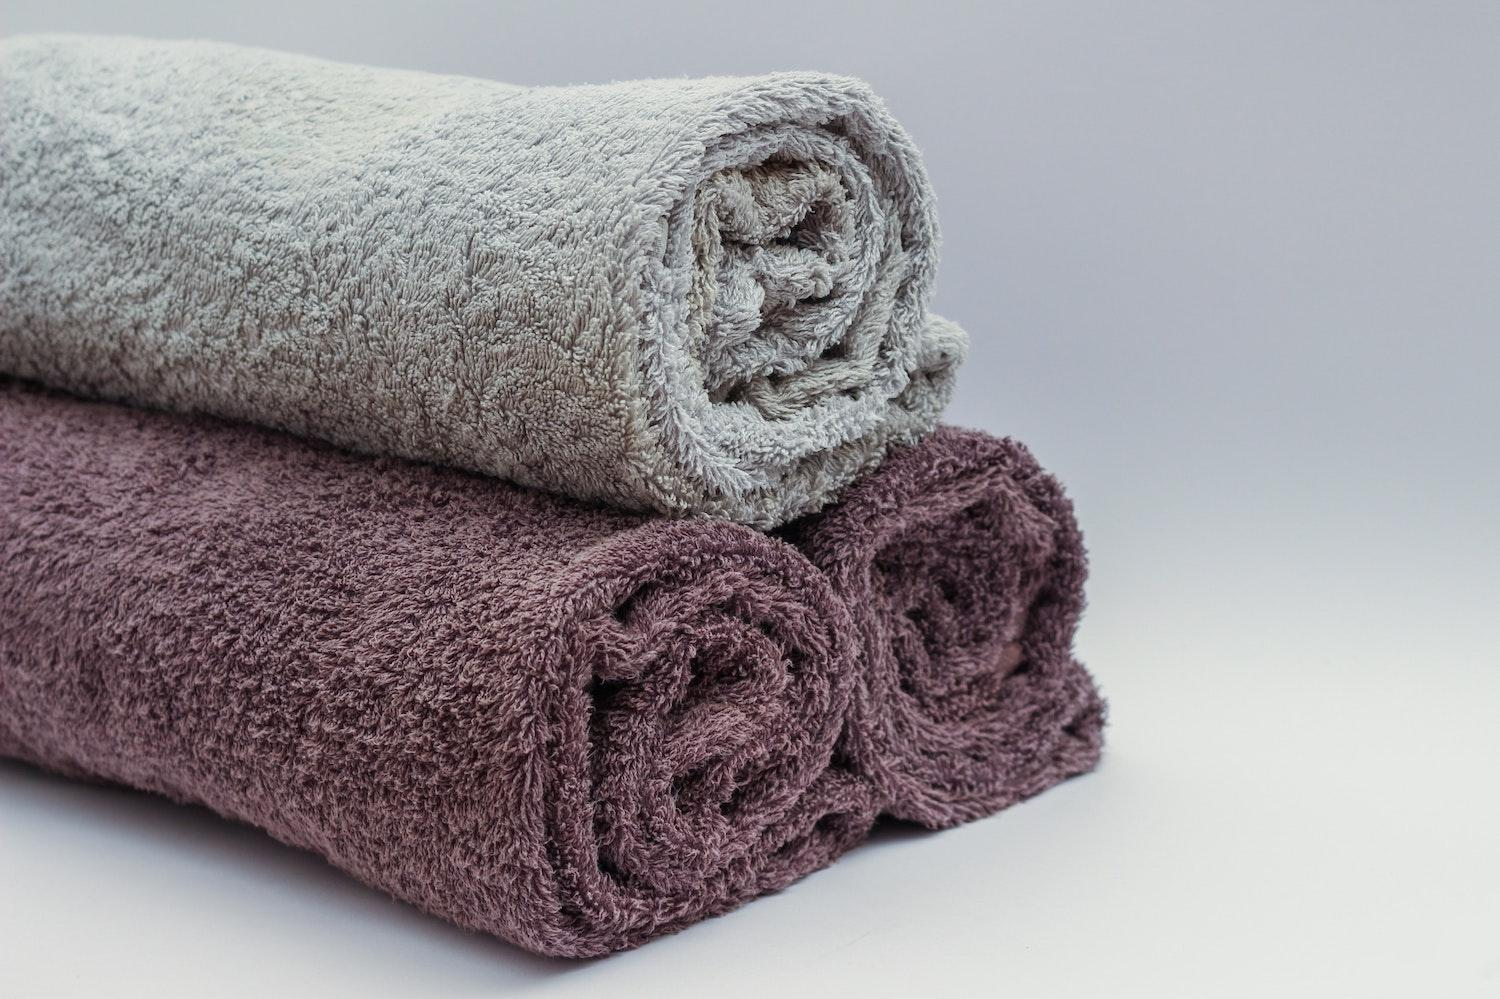 bath-towels-bathroom-laundry-45980-1529433370211.jpg